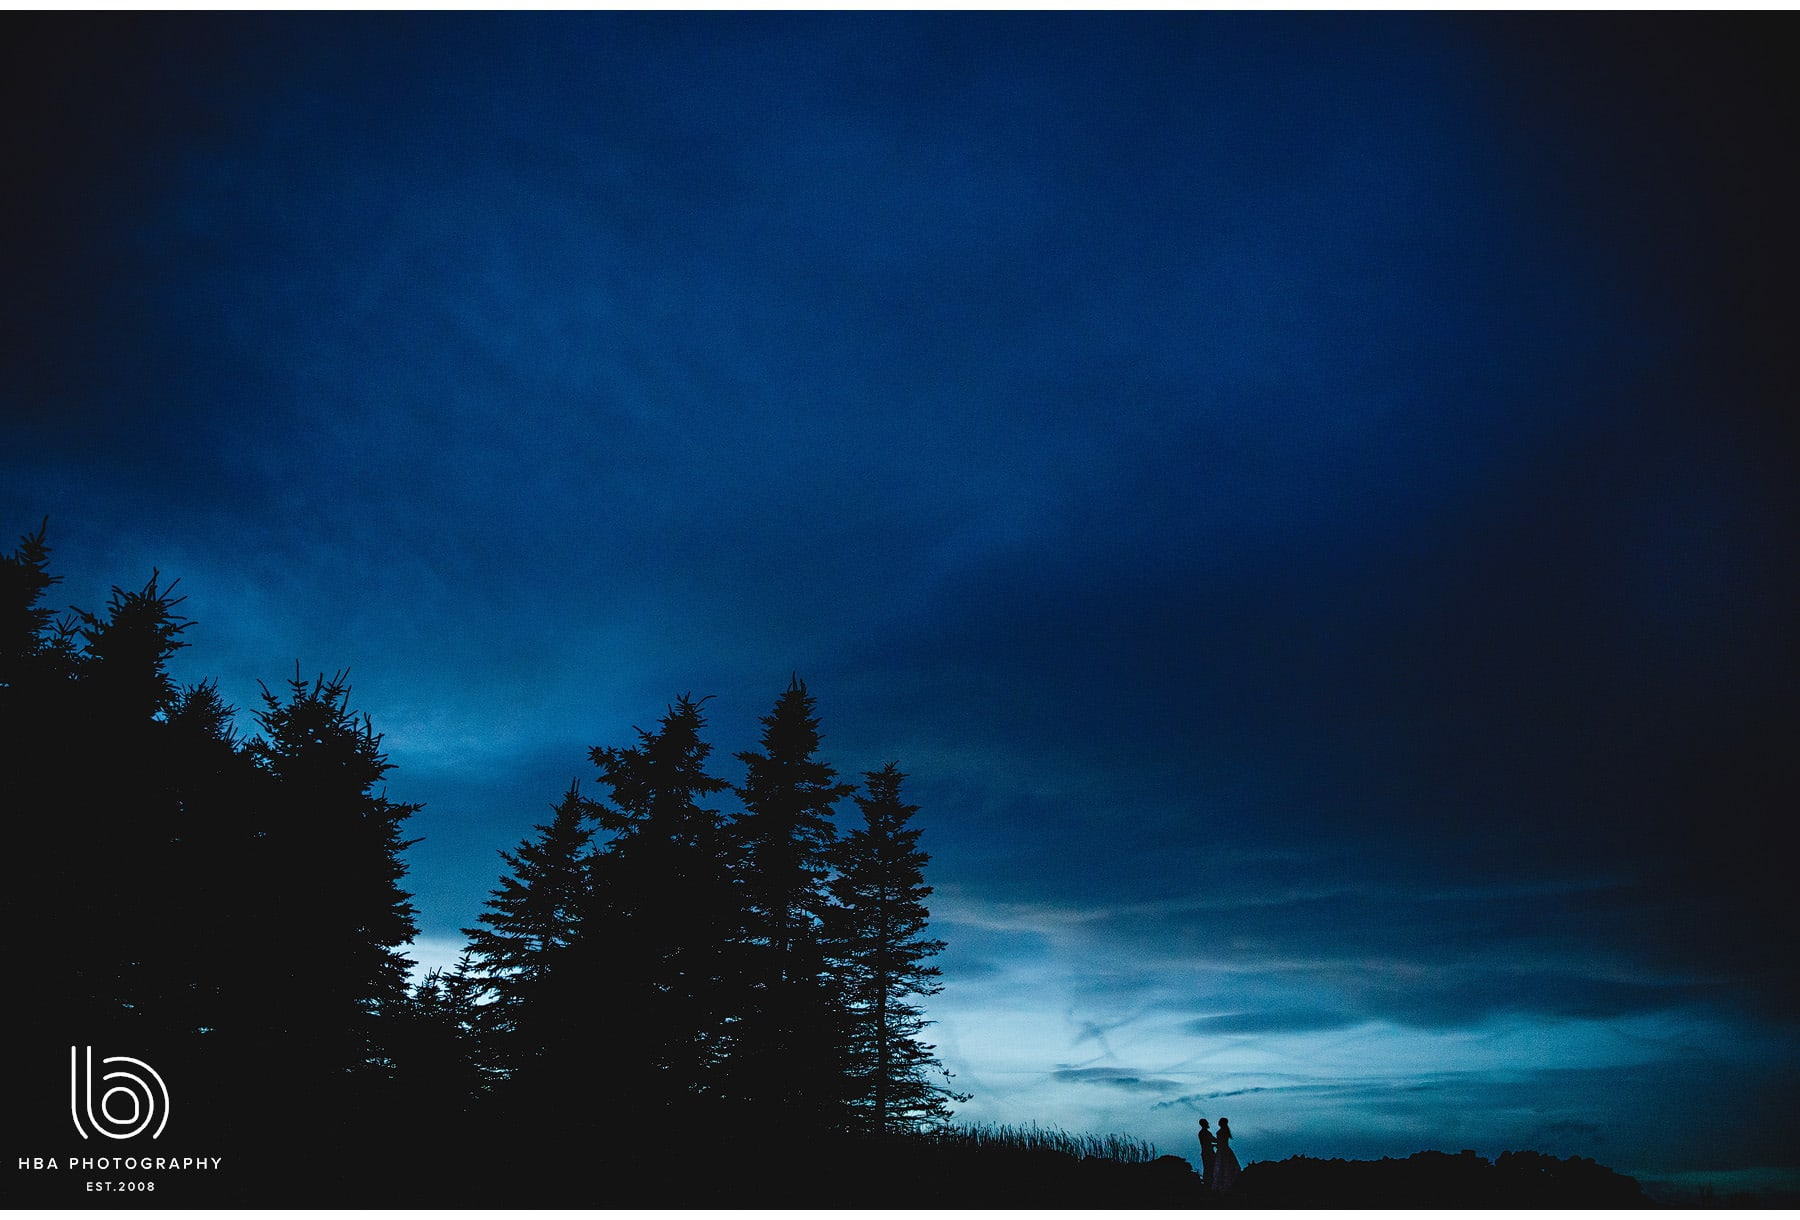 the couple in silhouette against the night sky